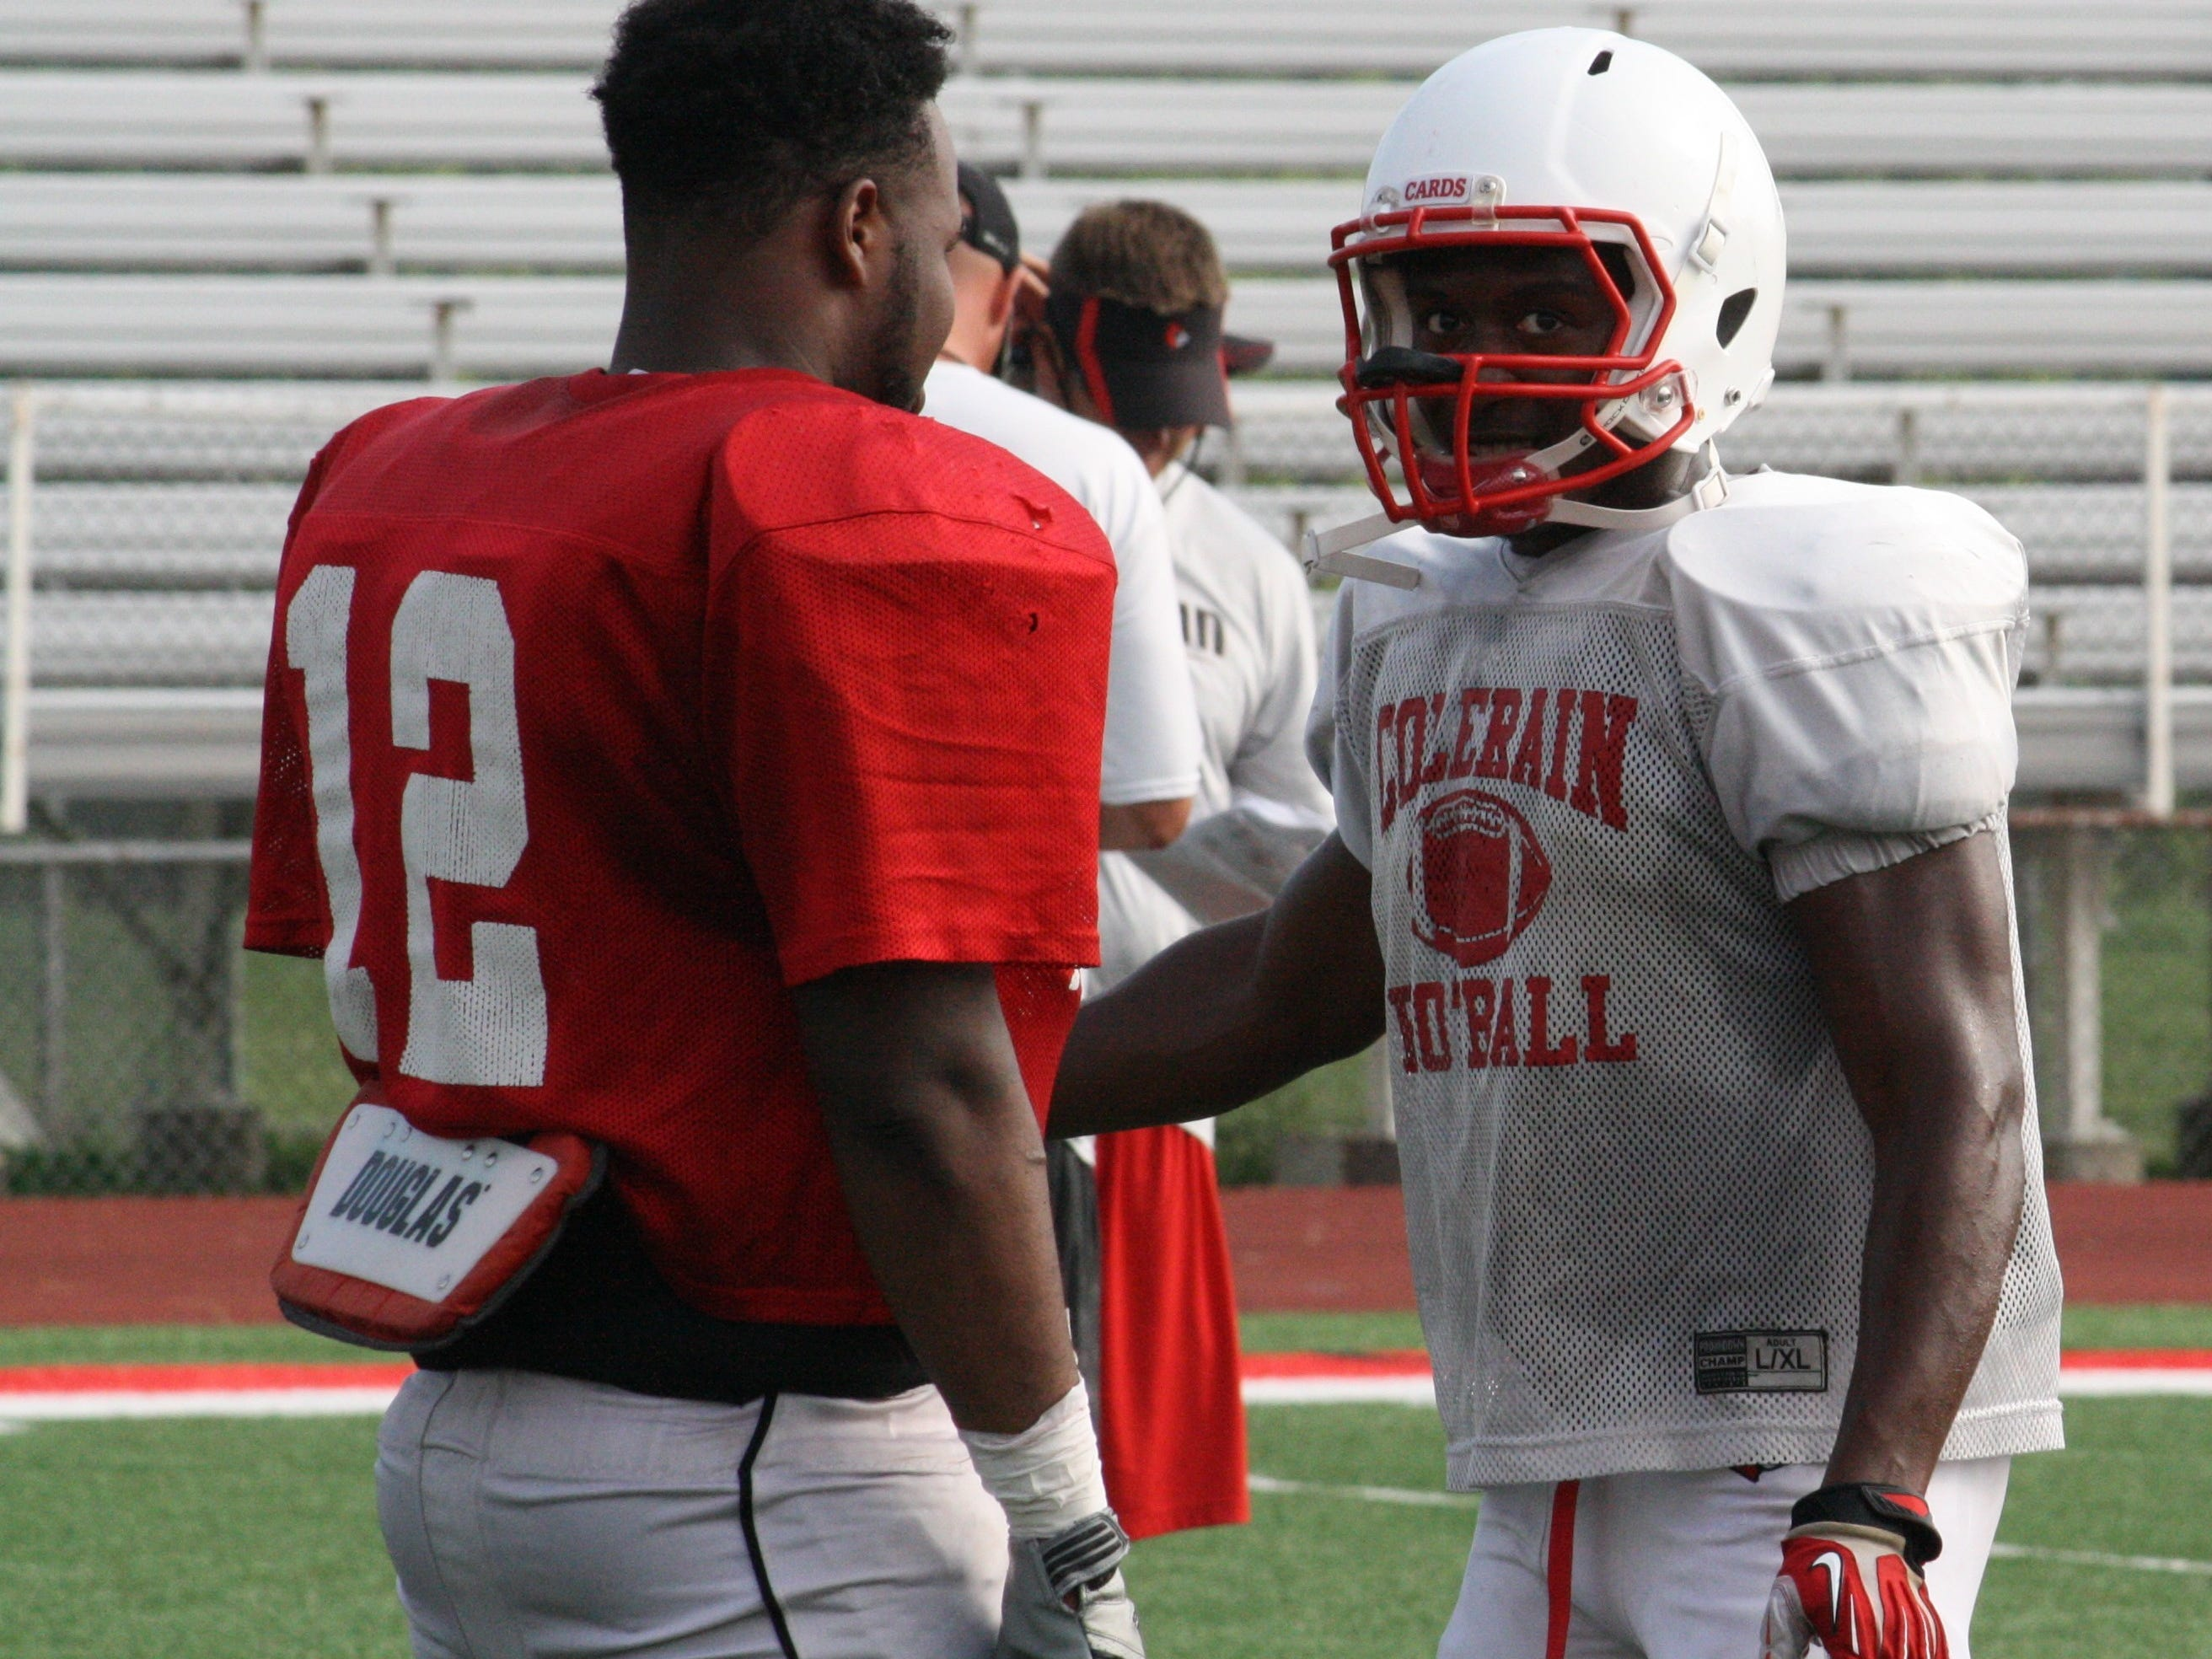 Two of Colerain High School's senior football captains, Demetrius Colbert, left, and Jordan Asberry chat during a water break at preseason practice Aug. 19. Colbert, a linebacker, was named first-team All-GMC in 2013, while Asberry rushed for 480 and caught six balls for 123 yards last season.